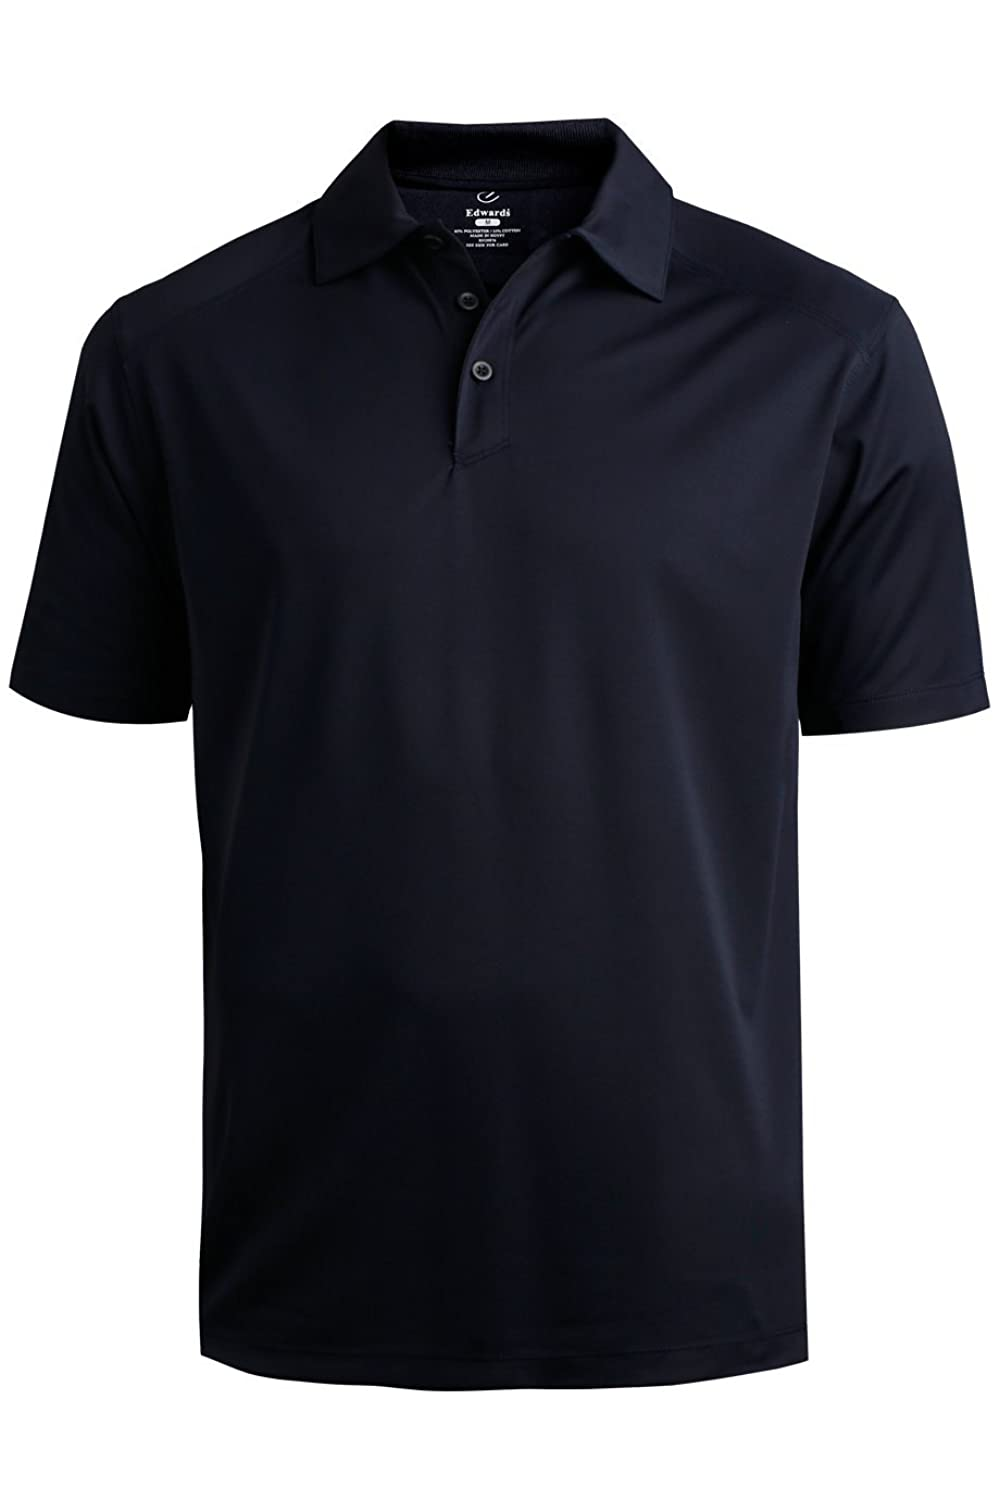 Hanes ComfortSoft Cotton Pique Men's Polo